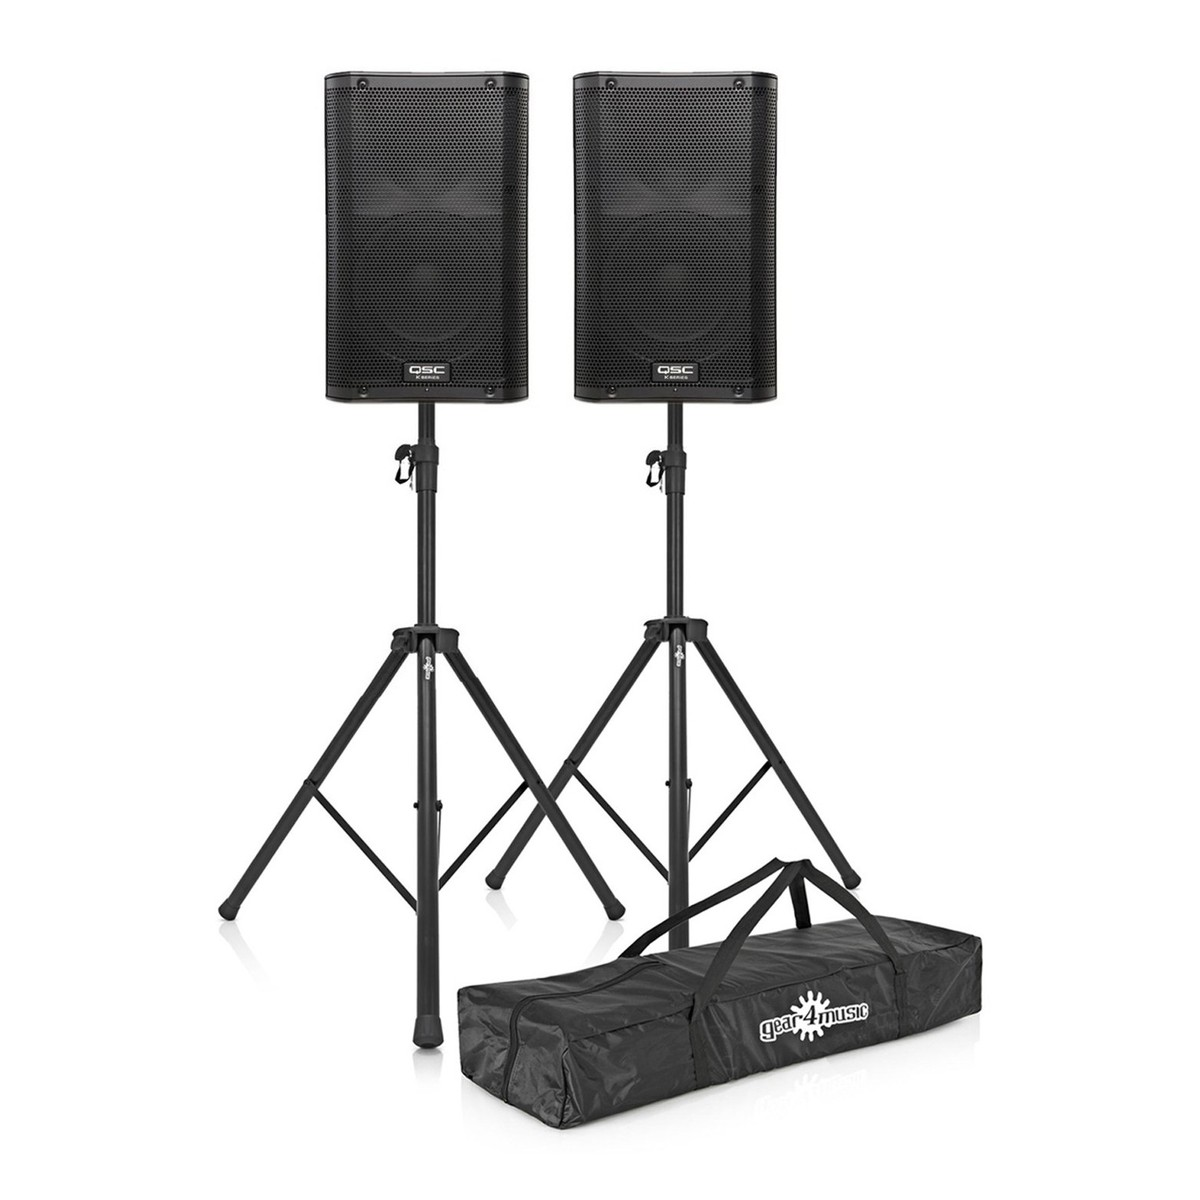 Qsc K10 Active Pa Speakers With Stands At Gear4music